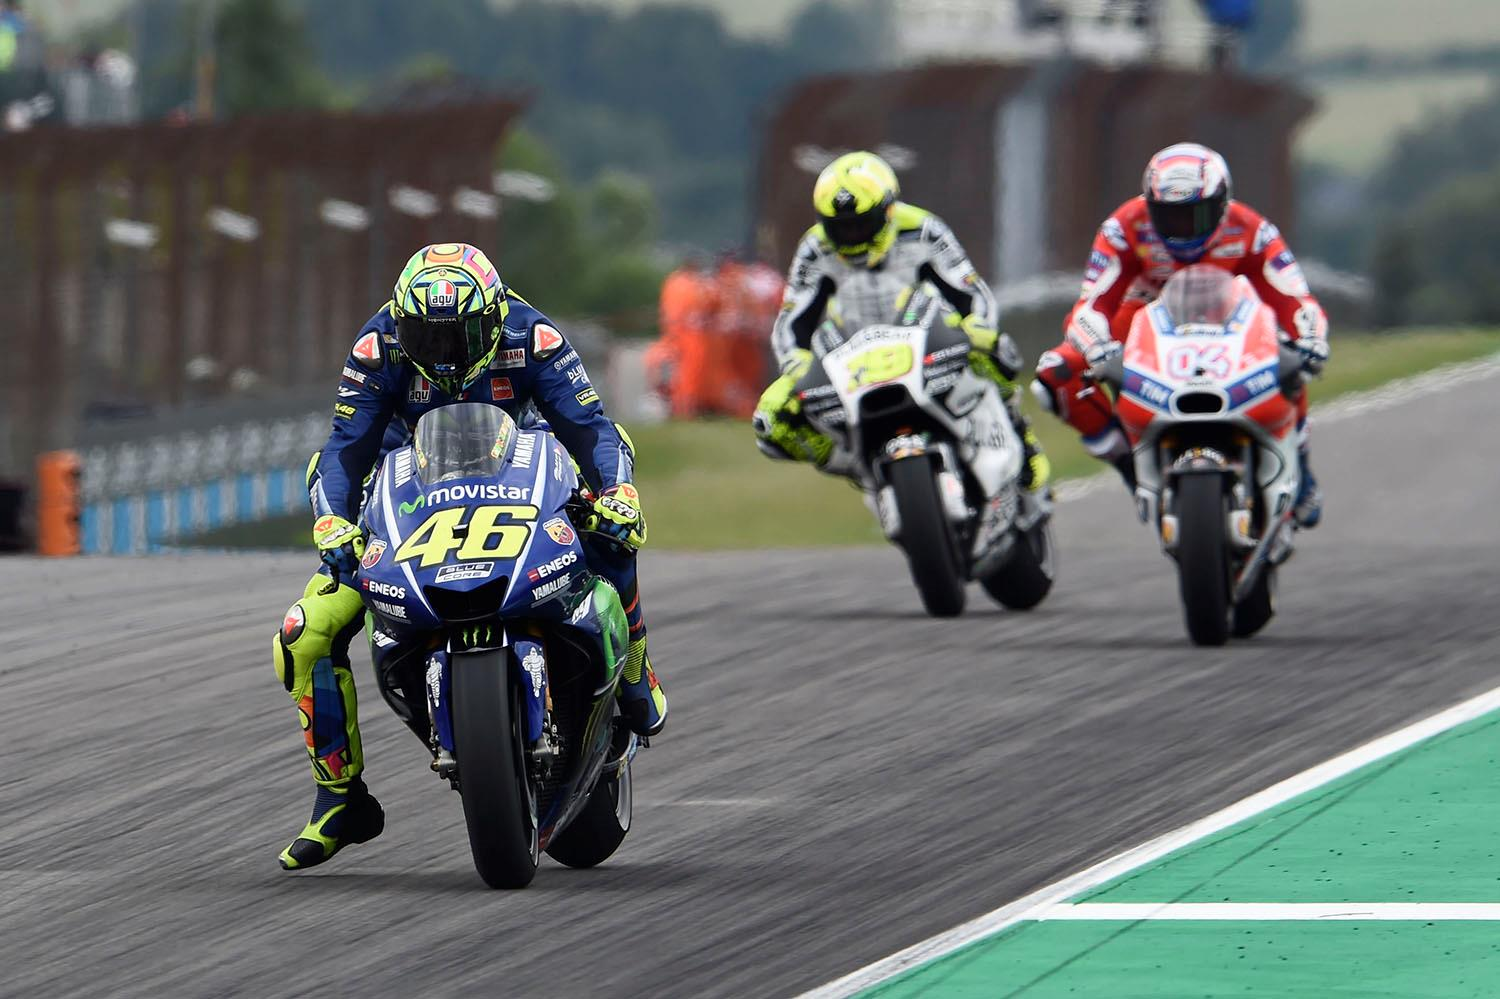 MotoGP Brno: Marquez wins by 12s after tyre masterstroke